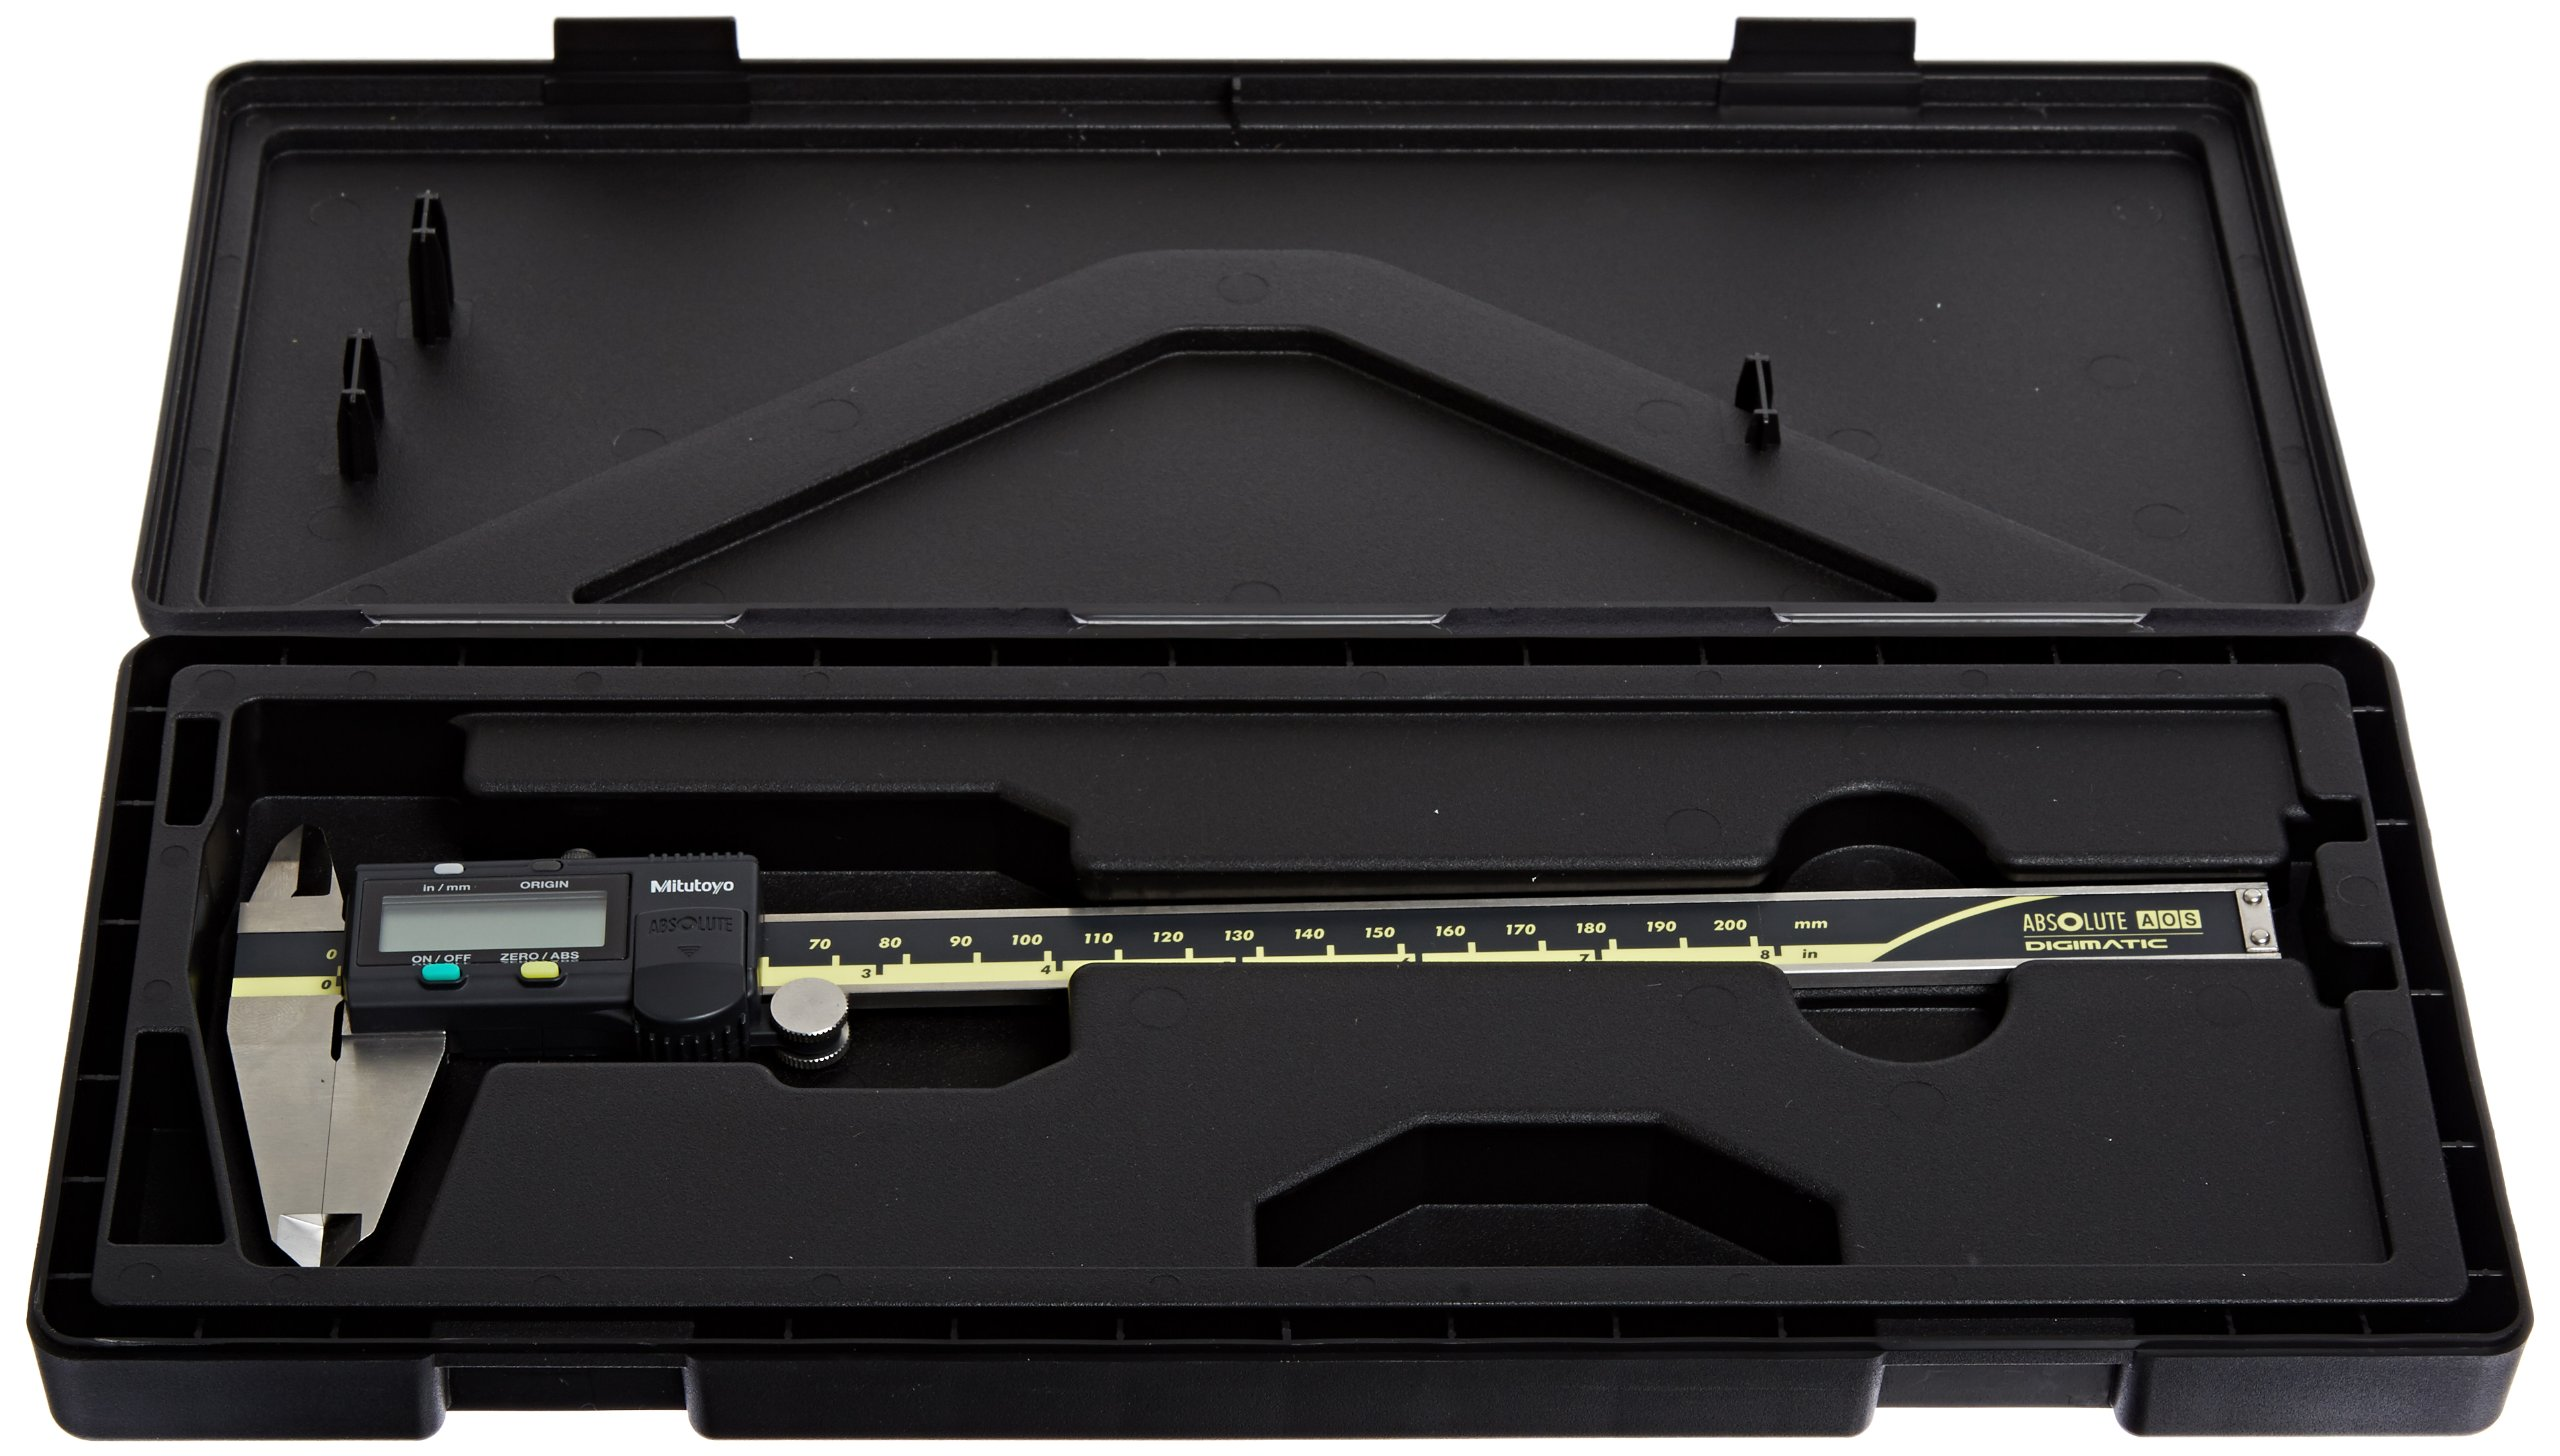 Mitutoyo 500-197-30 Advanced Onsite Sensor (AOS) Absolute Scale Digital Caliper, 0 to 8''/0 to 200mm Measuring Range, 0.0005''/0.01mm Resolution, LCD by Mitutoyo